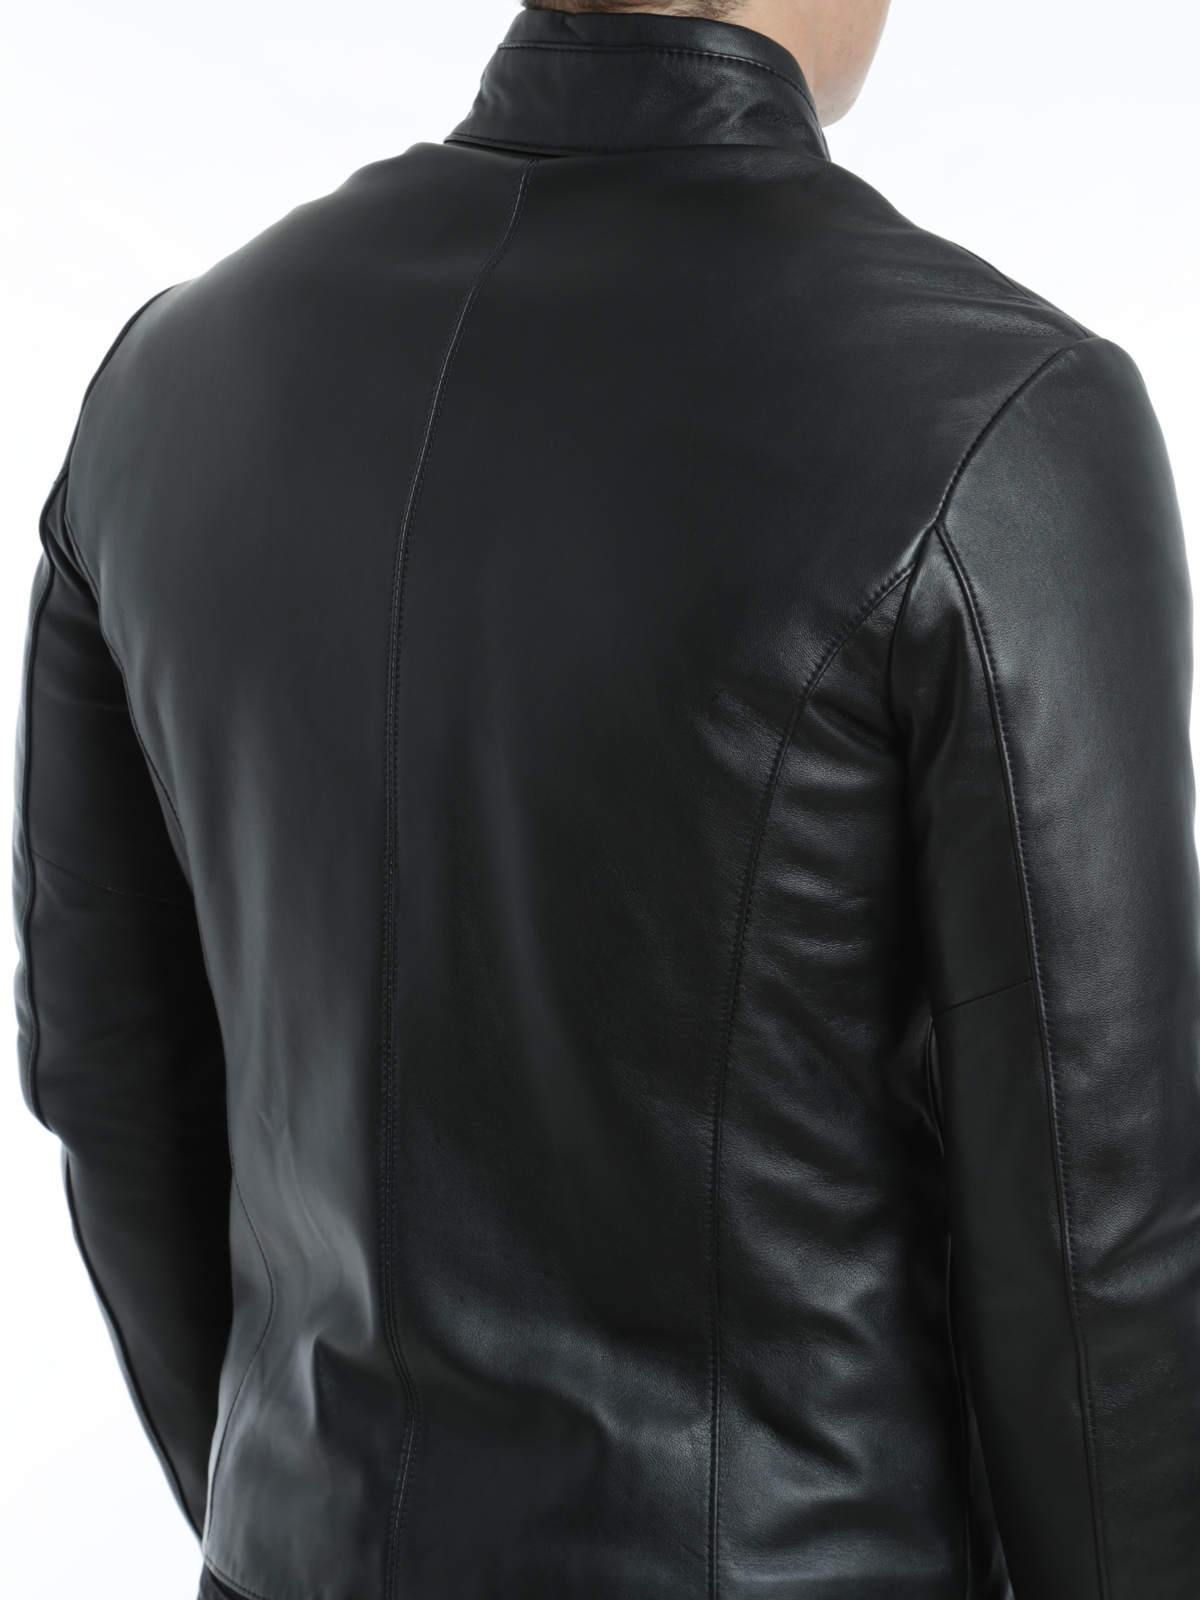 Collezioni leather jacket